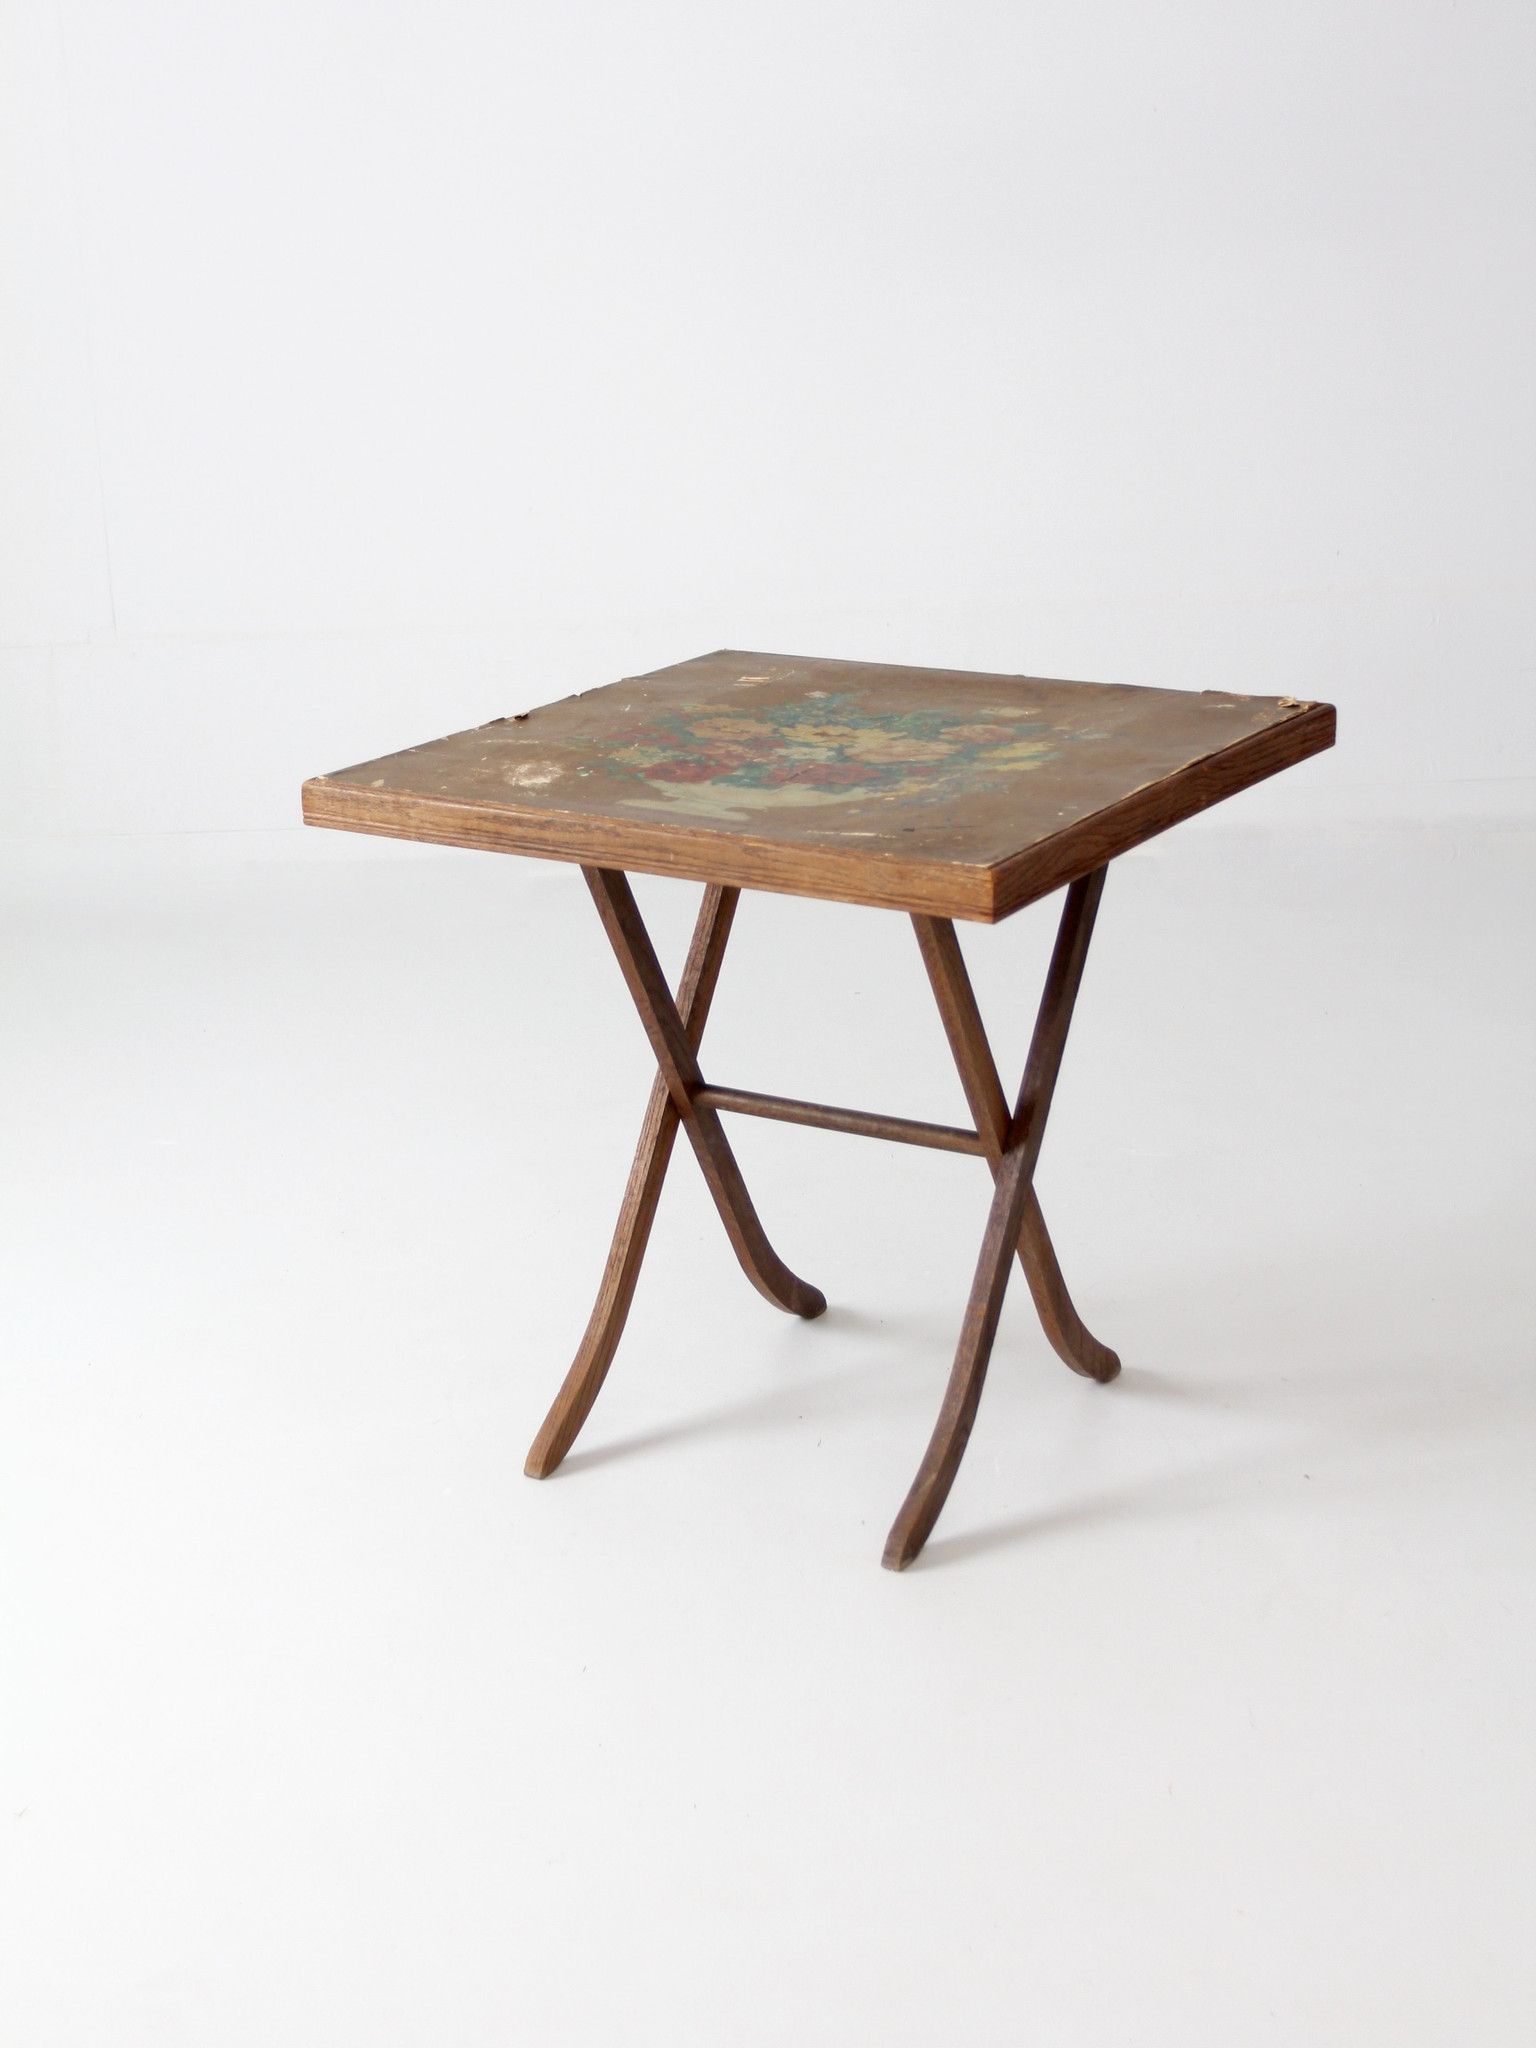 Vintage Wood Folding Table With Floral Top Wood Folding Table